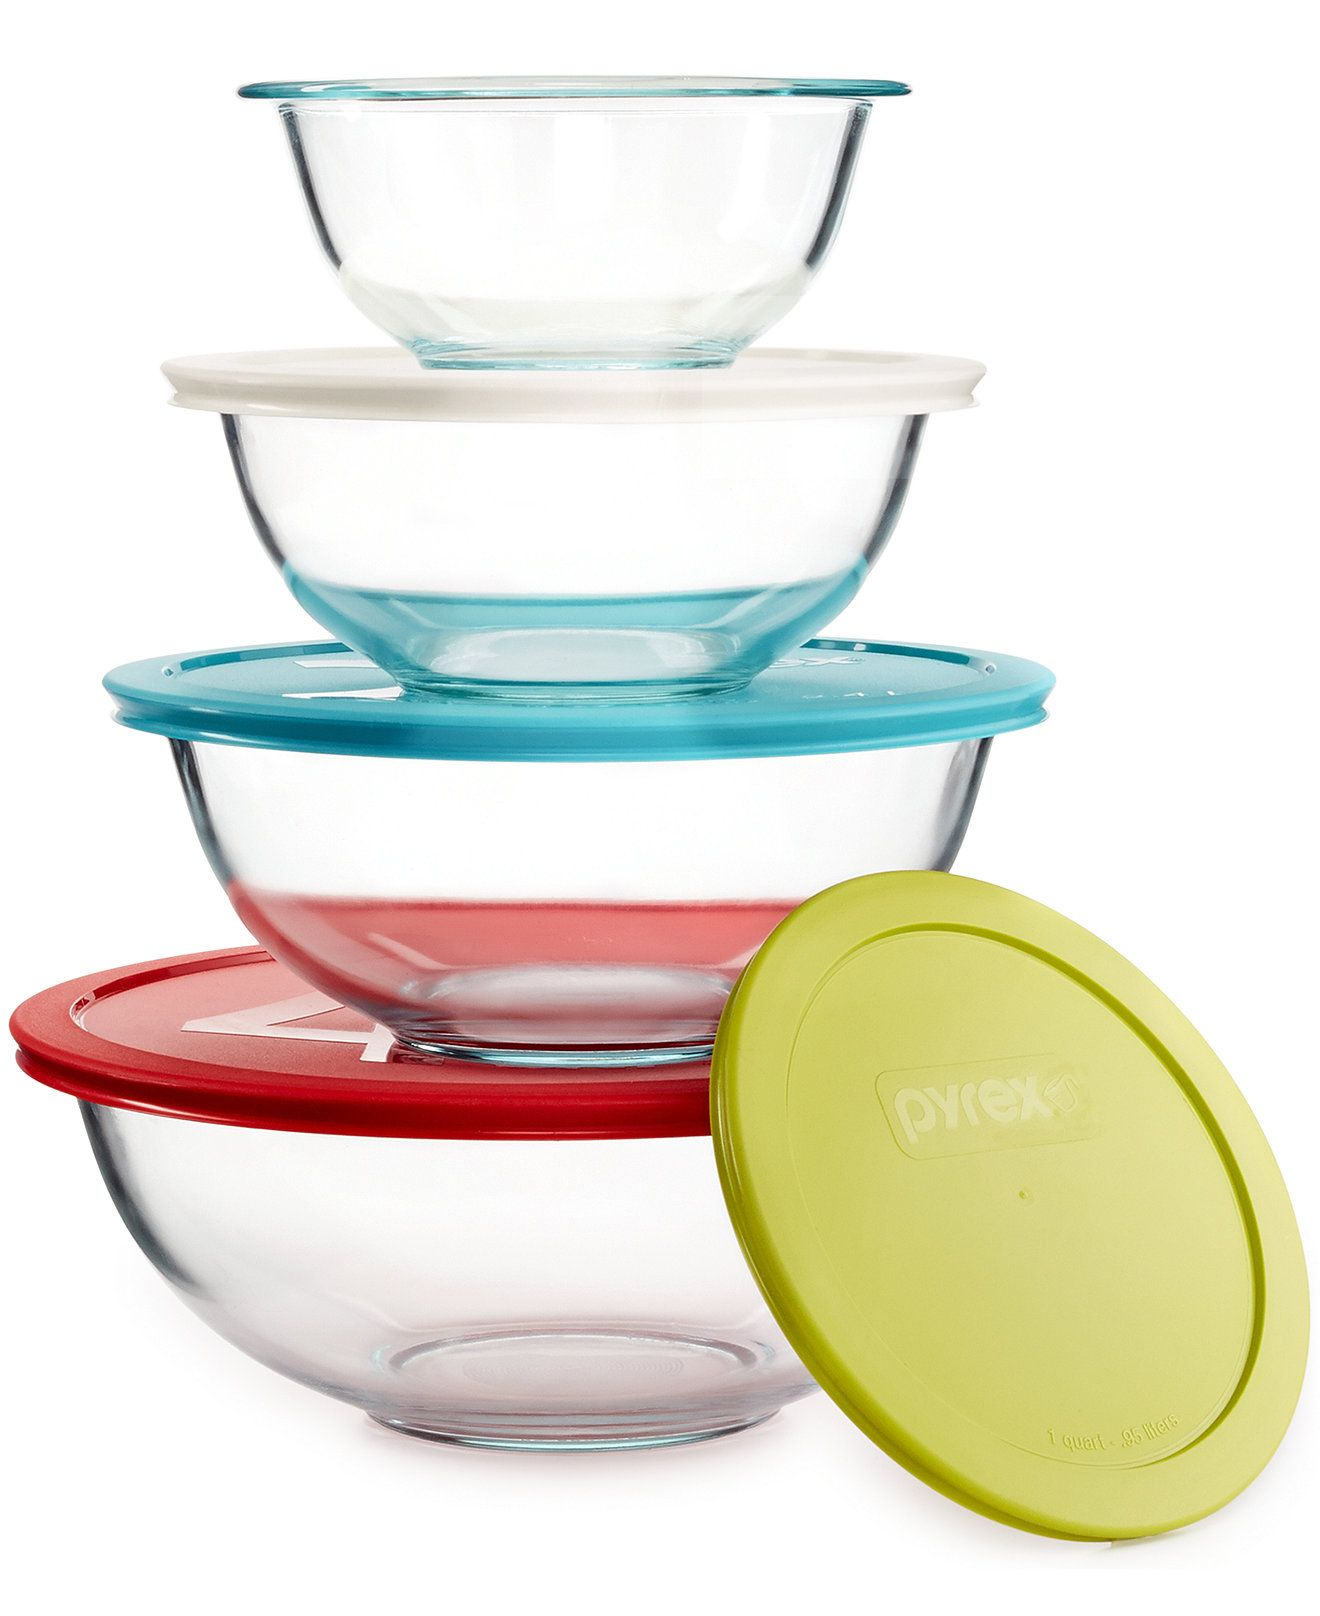 Pyrex 8Piece Mixing Bowl Set with Colored Lids Bakeware